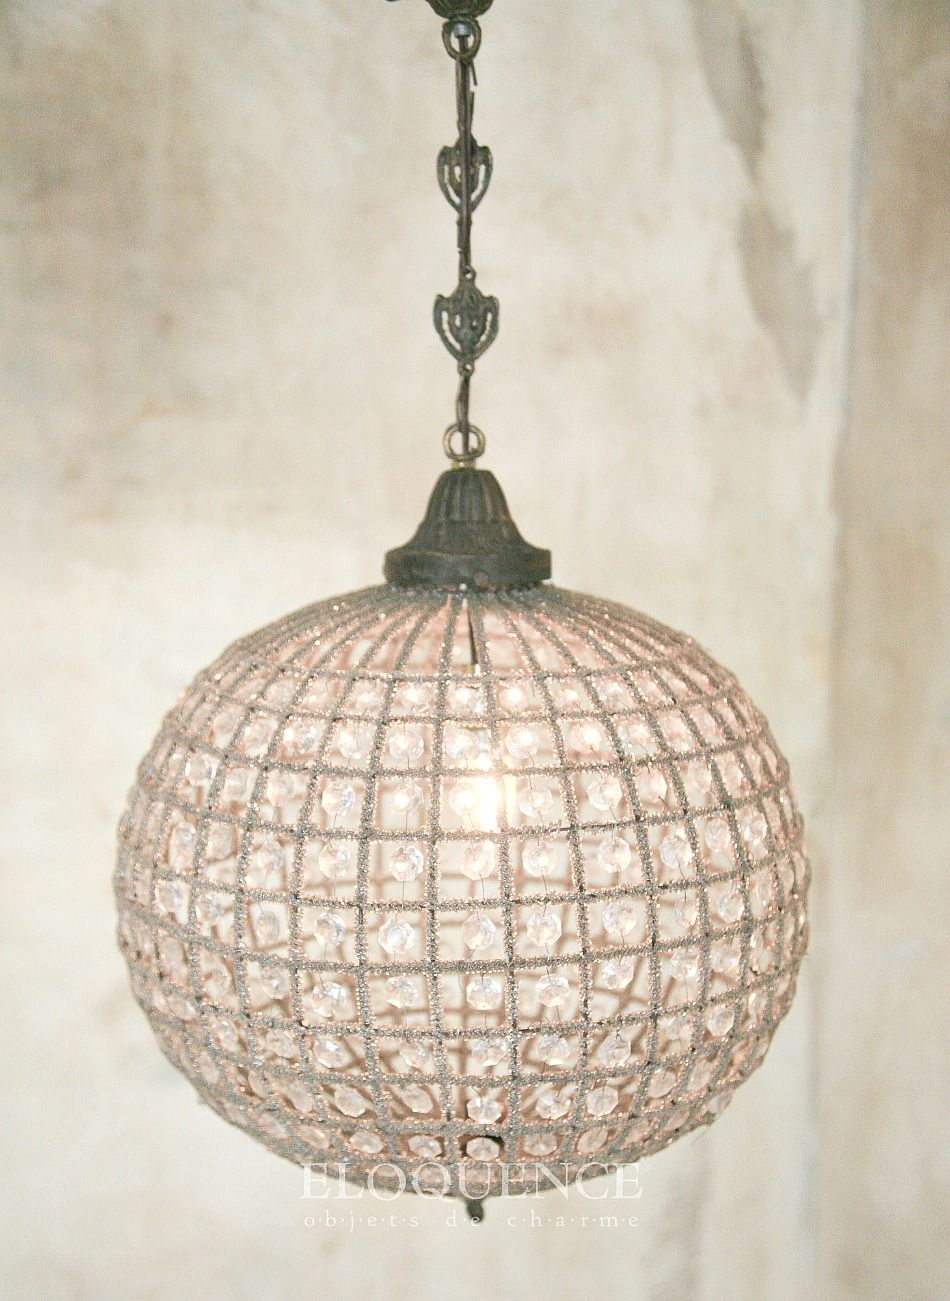 Eloquence Antique Reion French Style Beaded Globe Chandelier